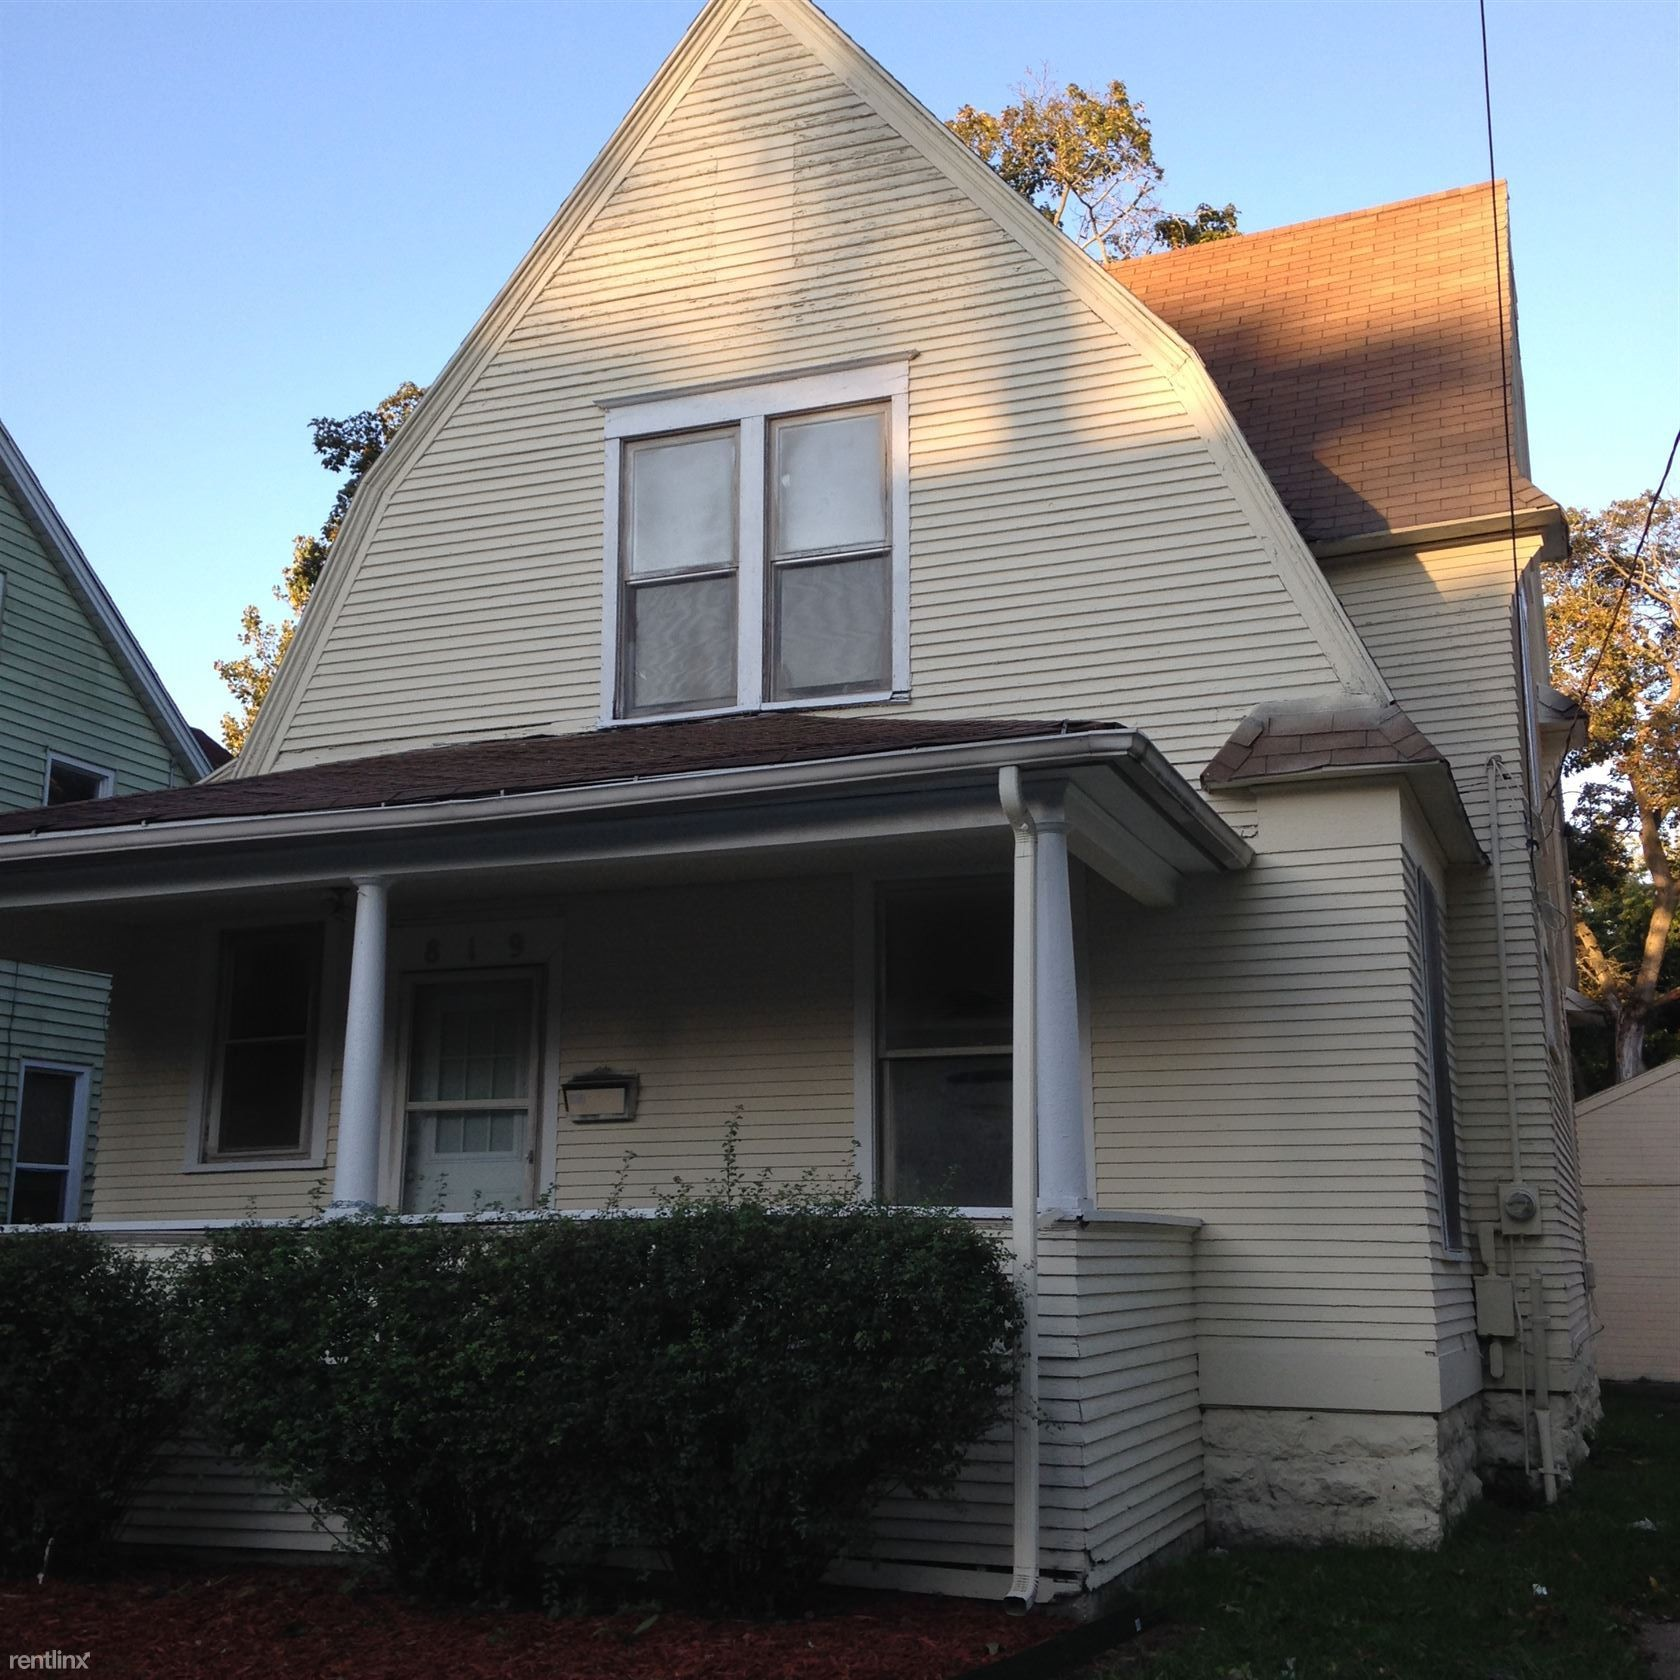 819 Kalamazoo Ave Se Grand Rapids Mi 49507 3 Bedroom House For Rent For 925 Month Zumper